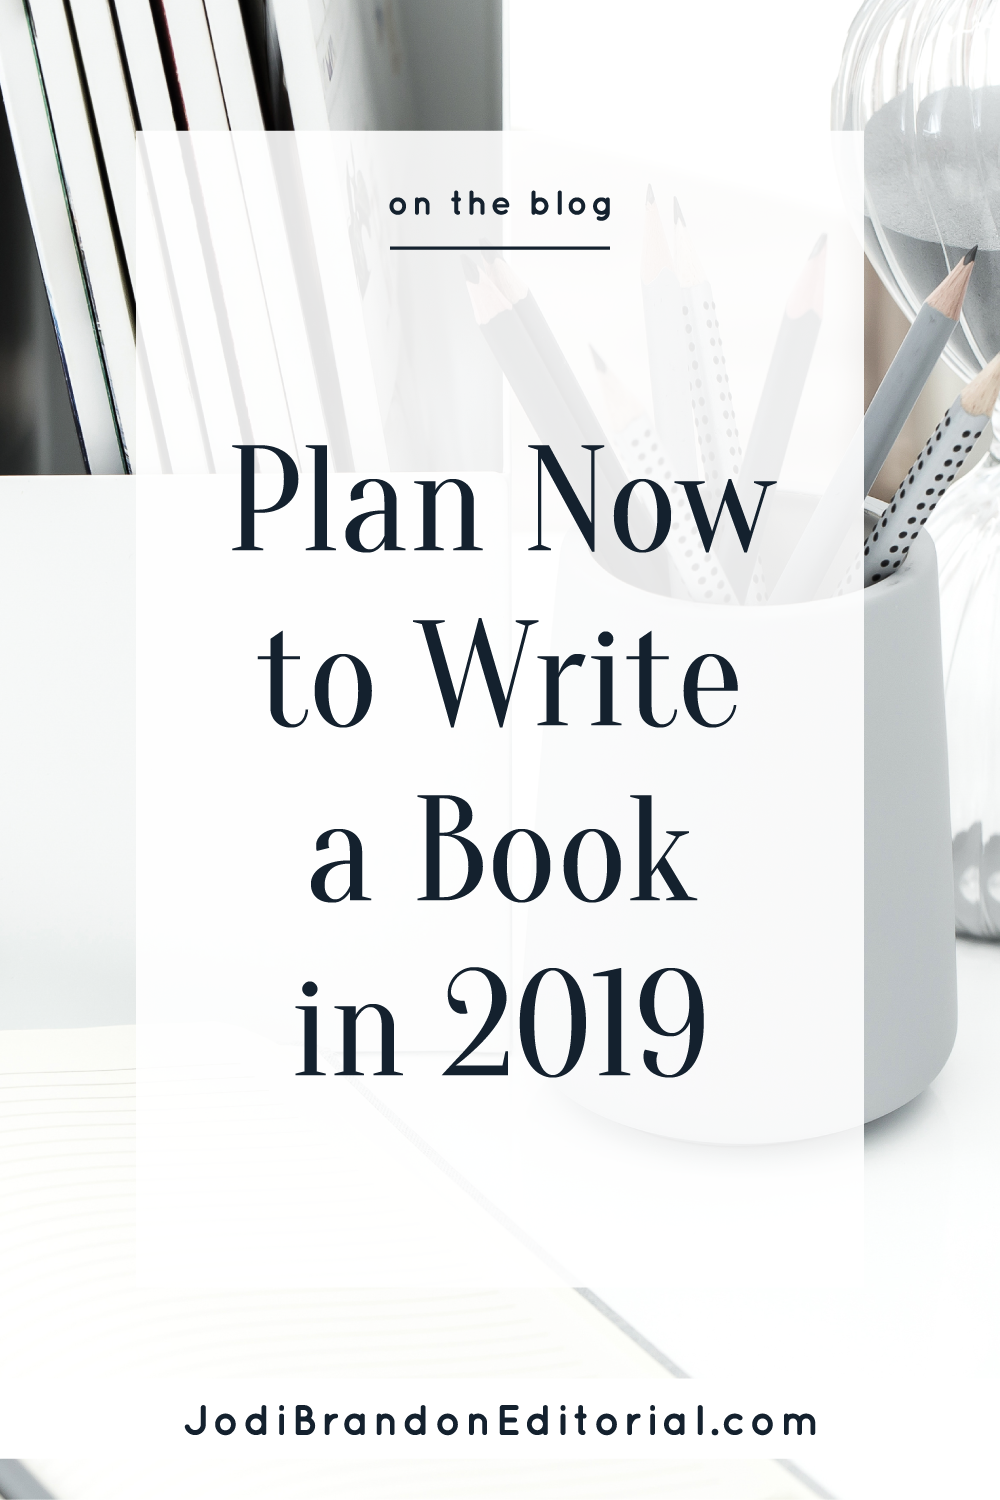 Writing a book isn't a small goal. It's likely not something you decide to do on a whim (let alone do it that way!). If writing a book to serve your business this year is on your radar, here are your first steps.  |  Jodi Brandon Editorial